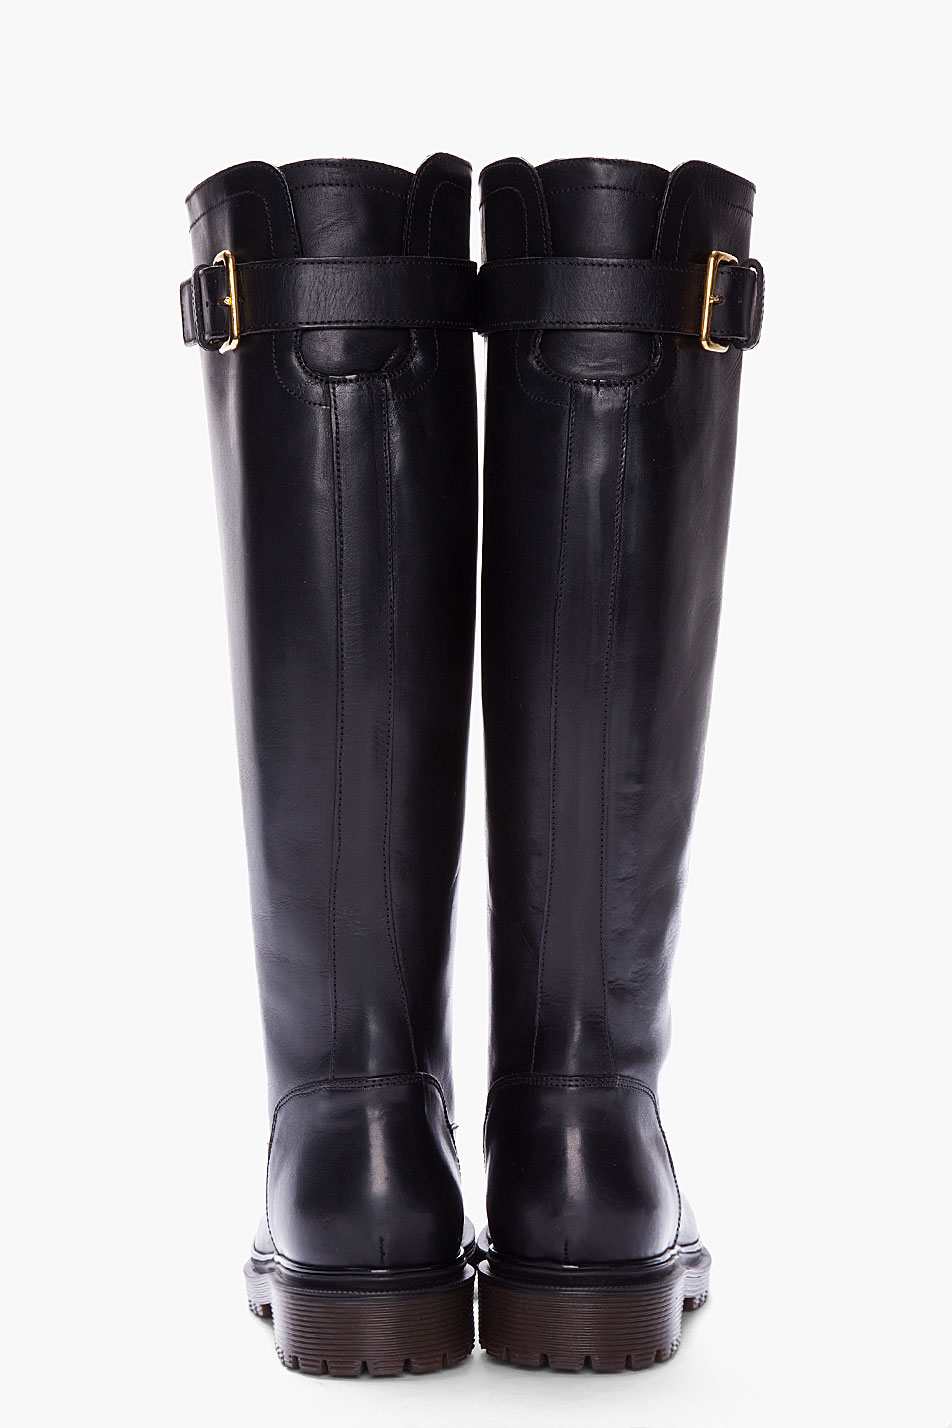 Black Leather Boots For Women | Fashion Boots